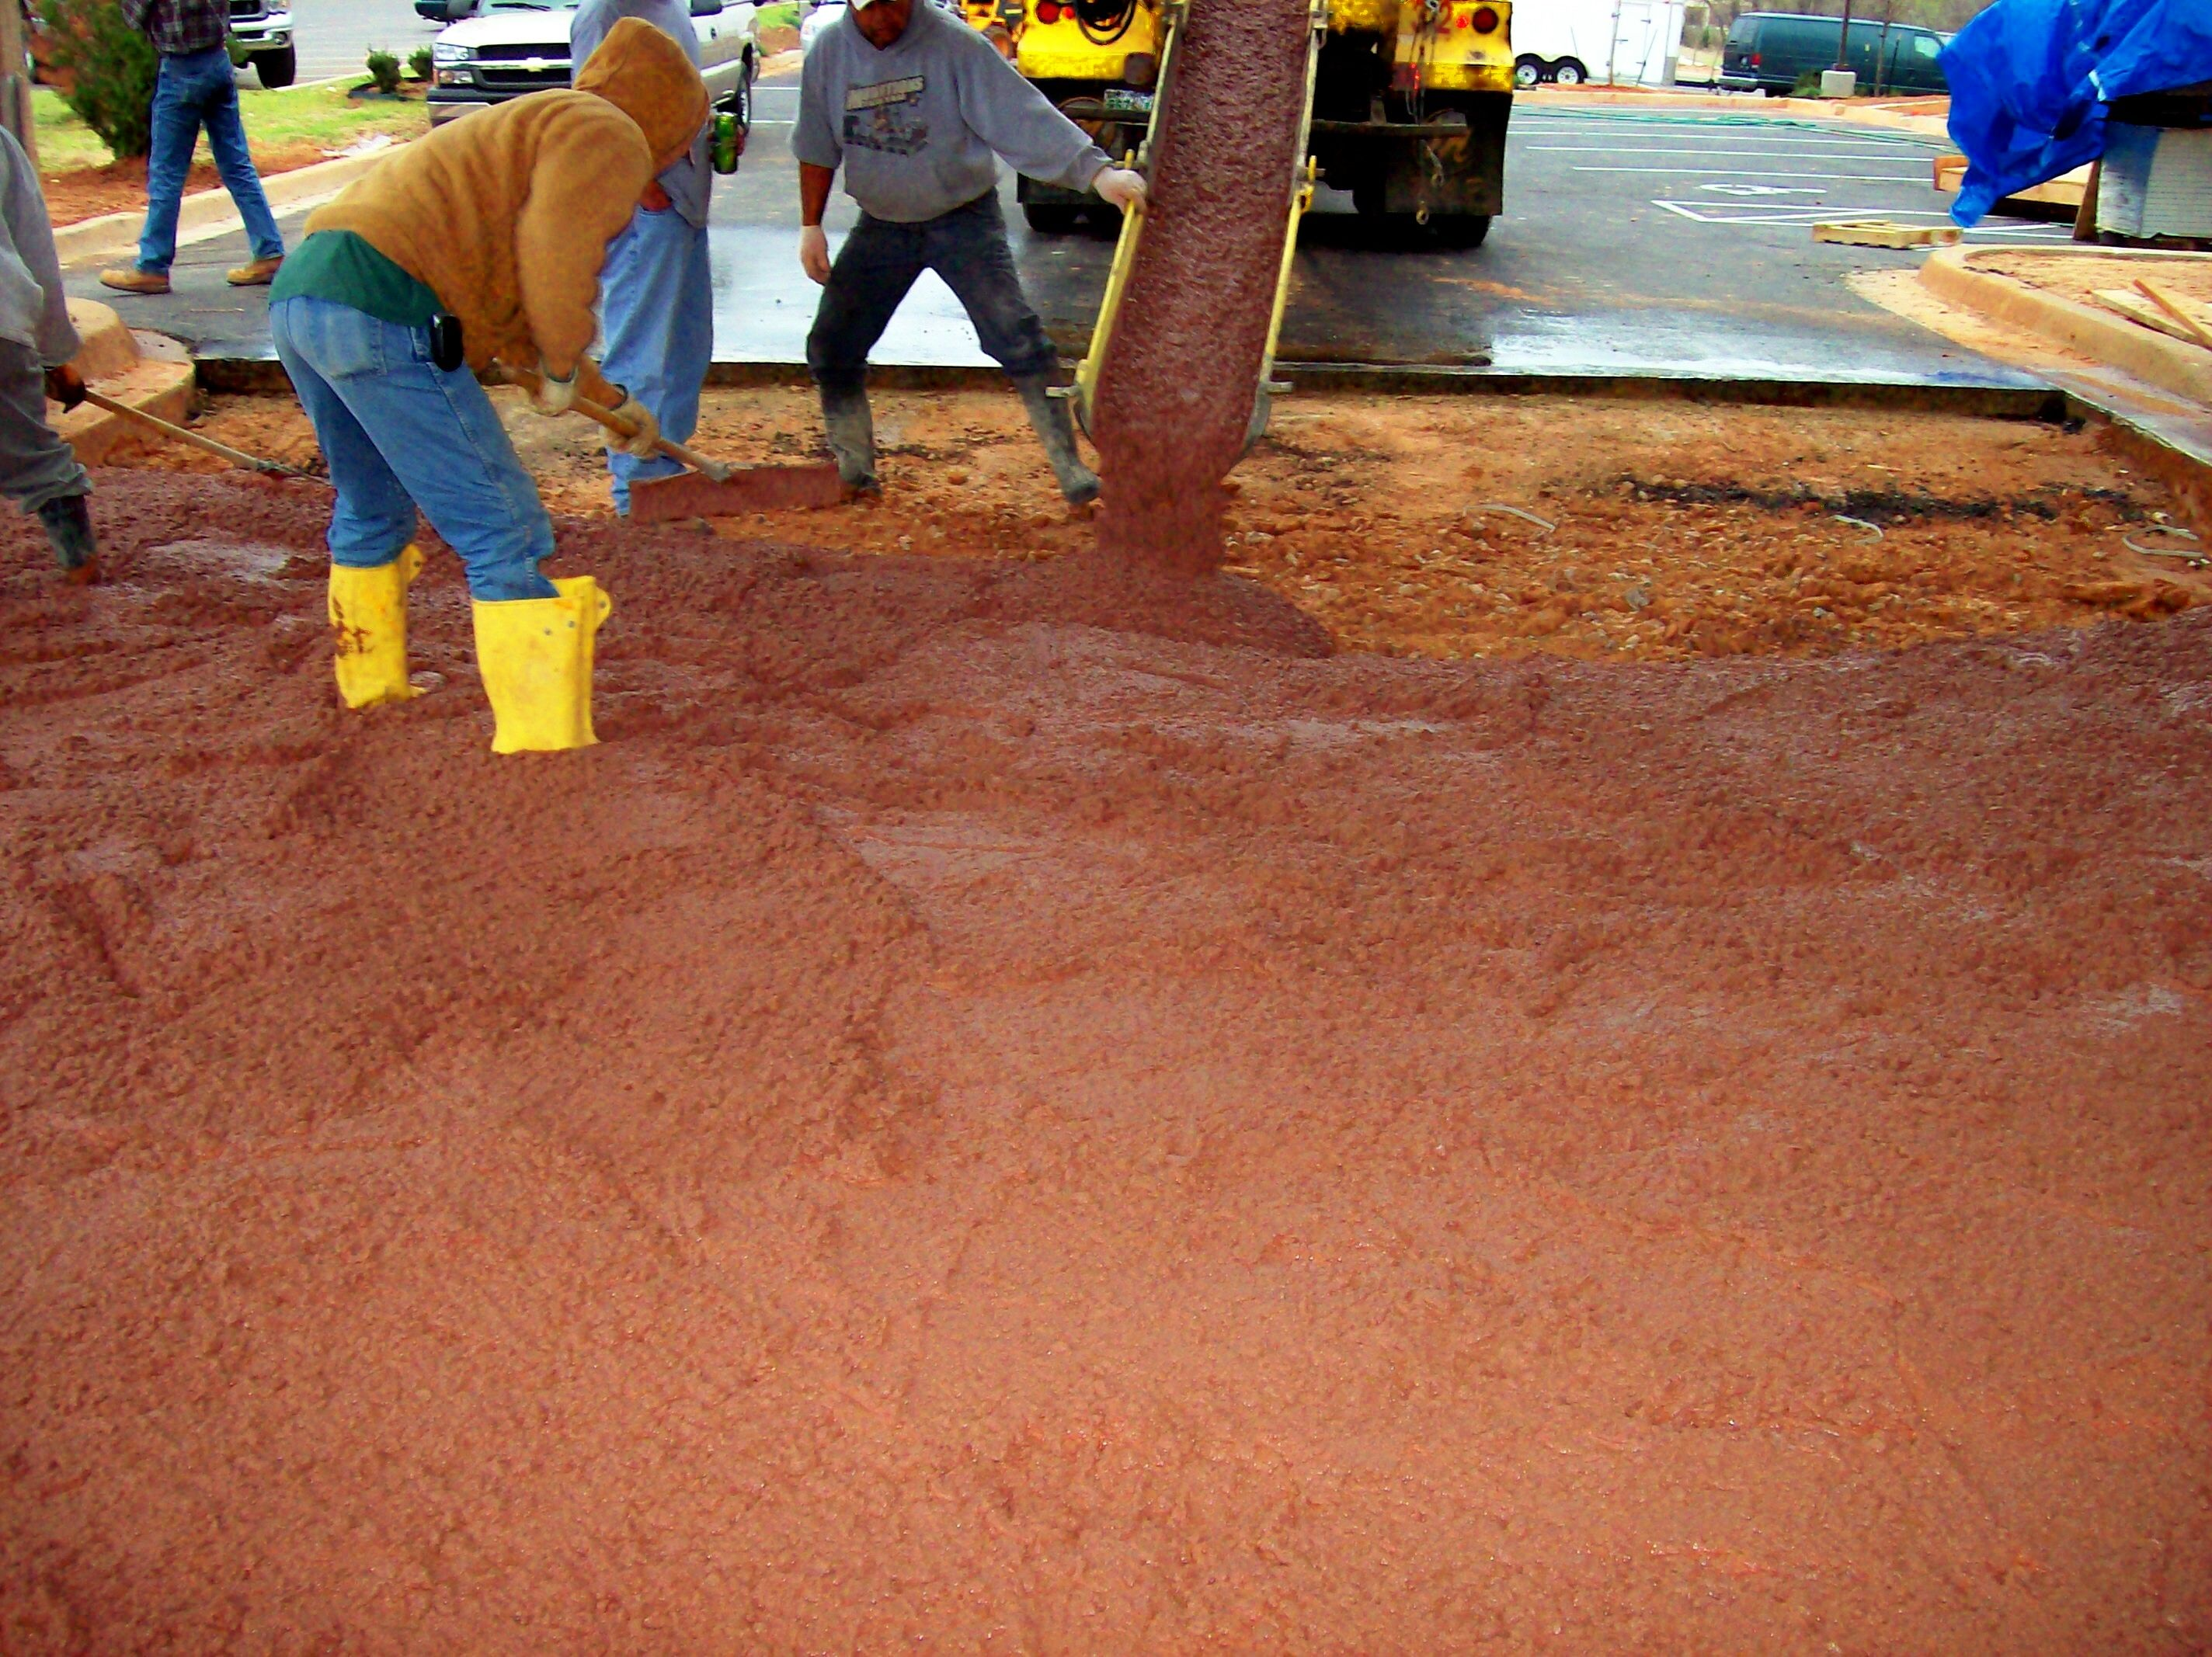 Many Of Our Customers Are Building Houses Or Pouring Colored Concrete Slabs And Have Questions About How To Mix Integral Color Into The Correctly